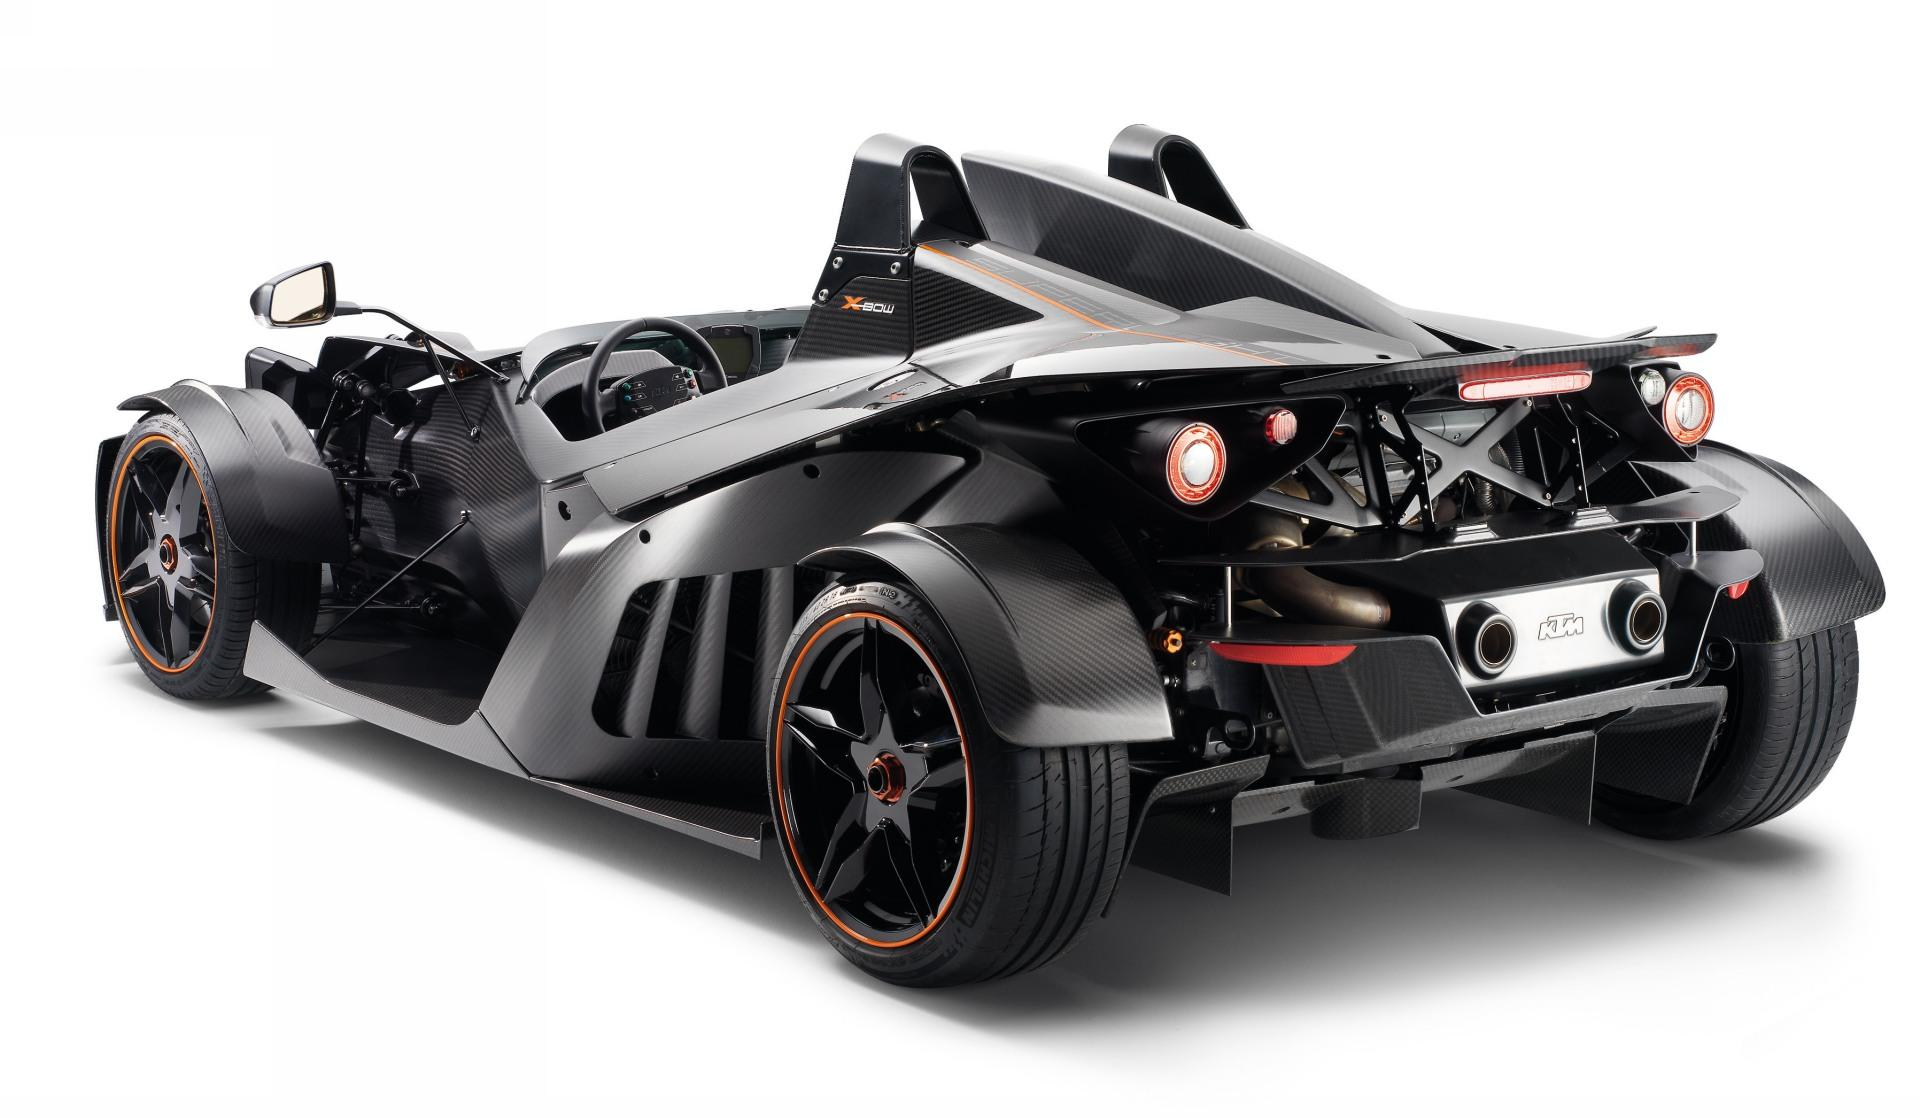 2009 ktm x bow superlight image. Black Bedroom Furniture Sets. Home Design Ideas